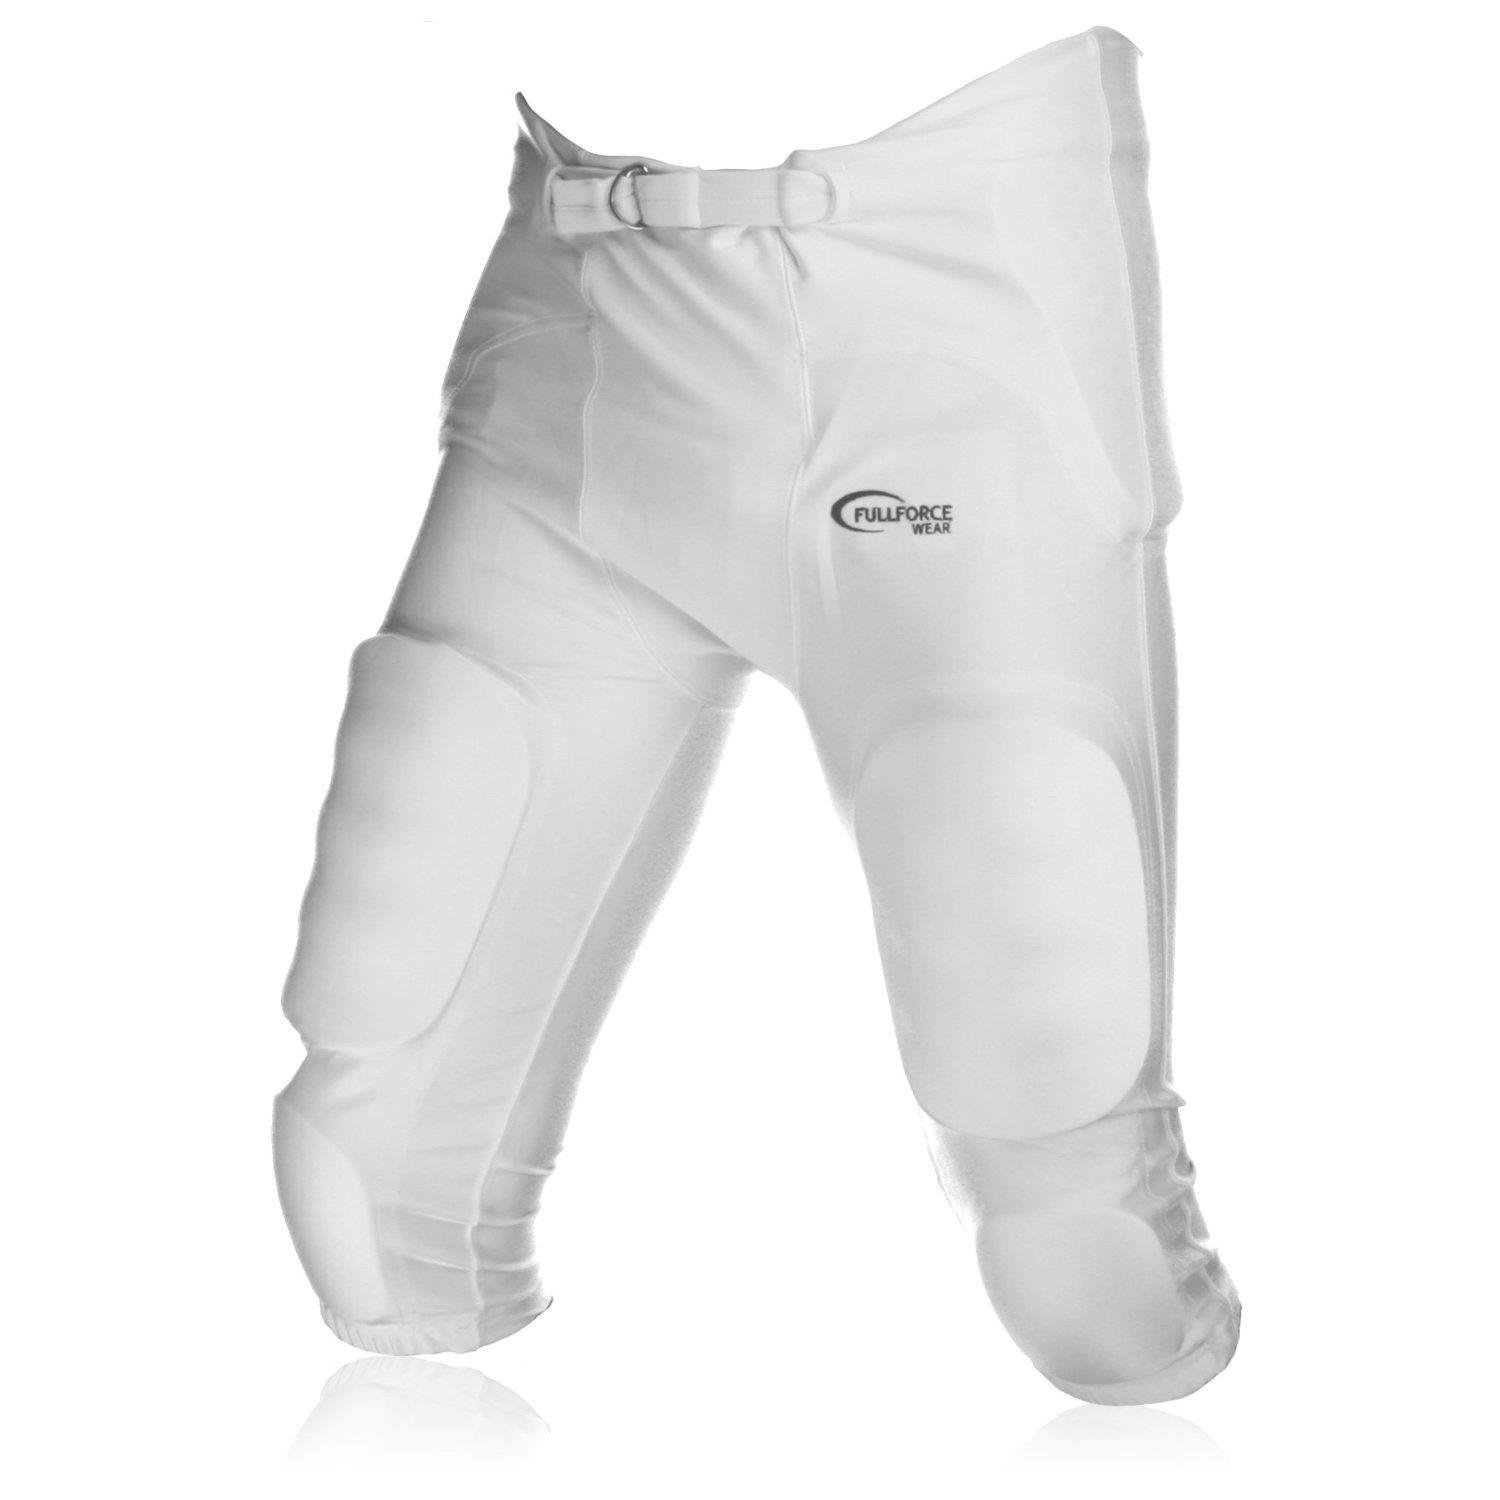 'Full Force American Football Crusher 7 Pocket Pad' All in One Game Pant, White, Size S – 2XL Size S - 2XL Full Force Wear